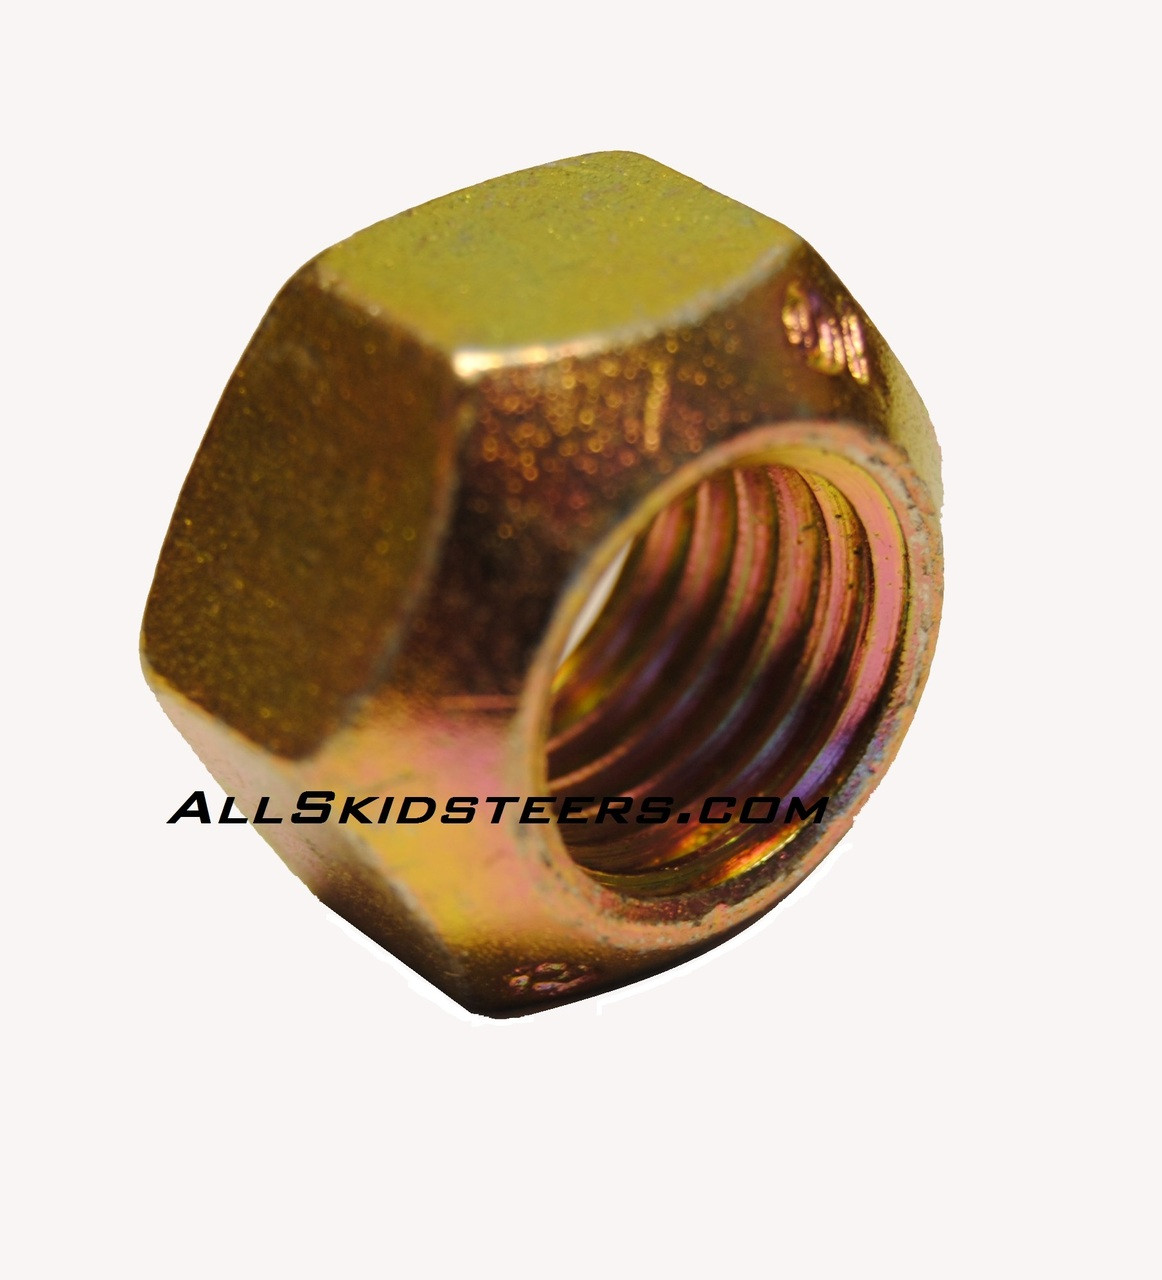 Lug Nut for New Holland® | Replaces OEM # 408127A1